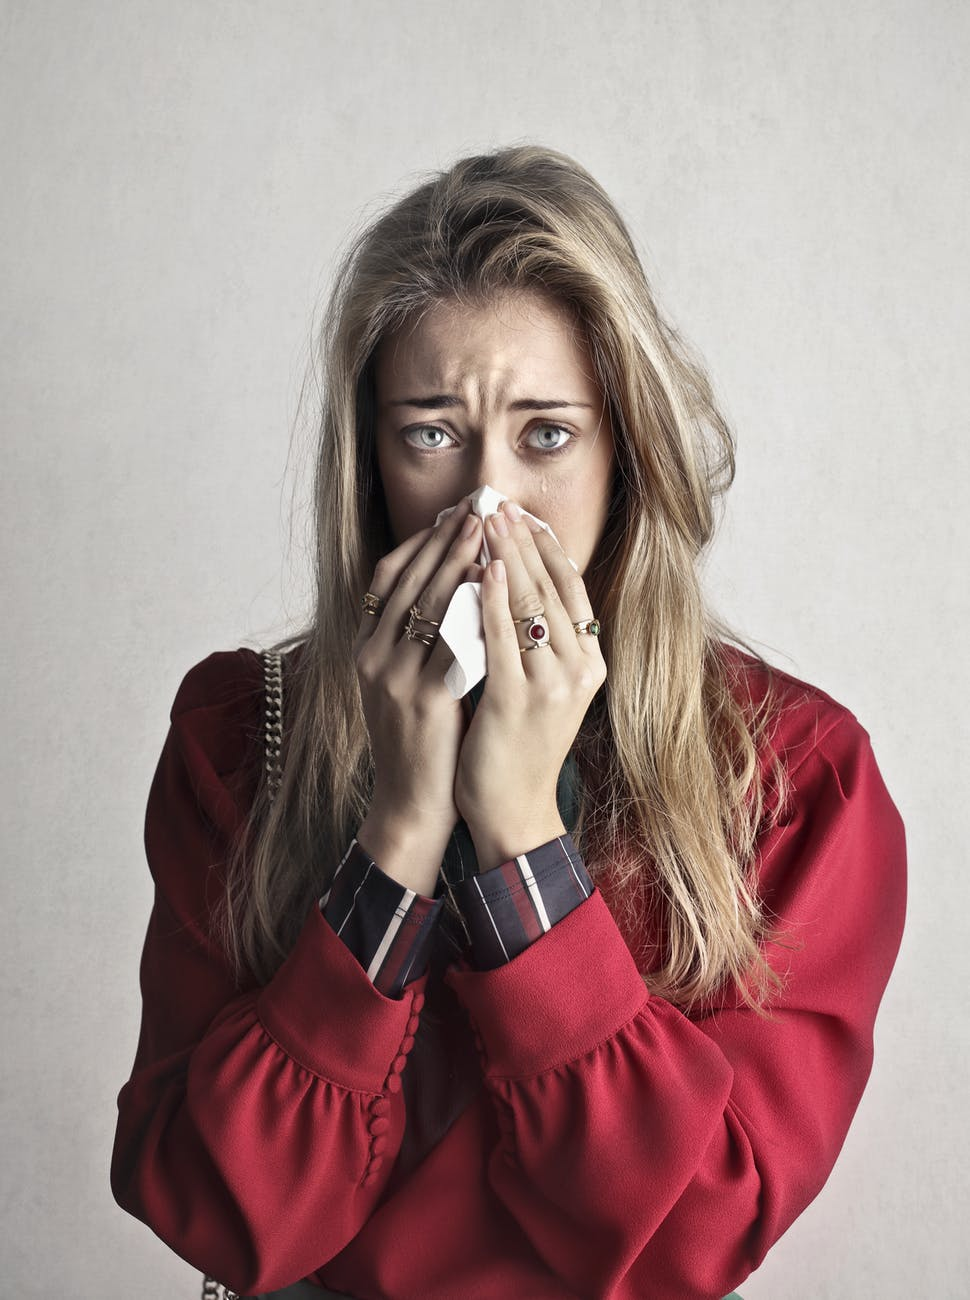 photo of crying woman in red long sleeve shirt blowing her nose